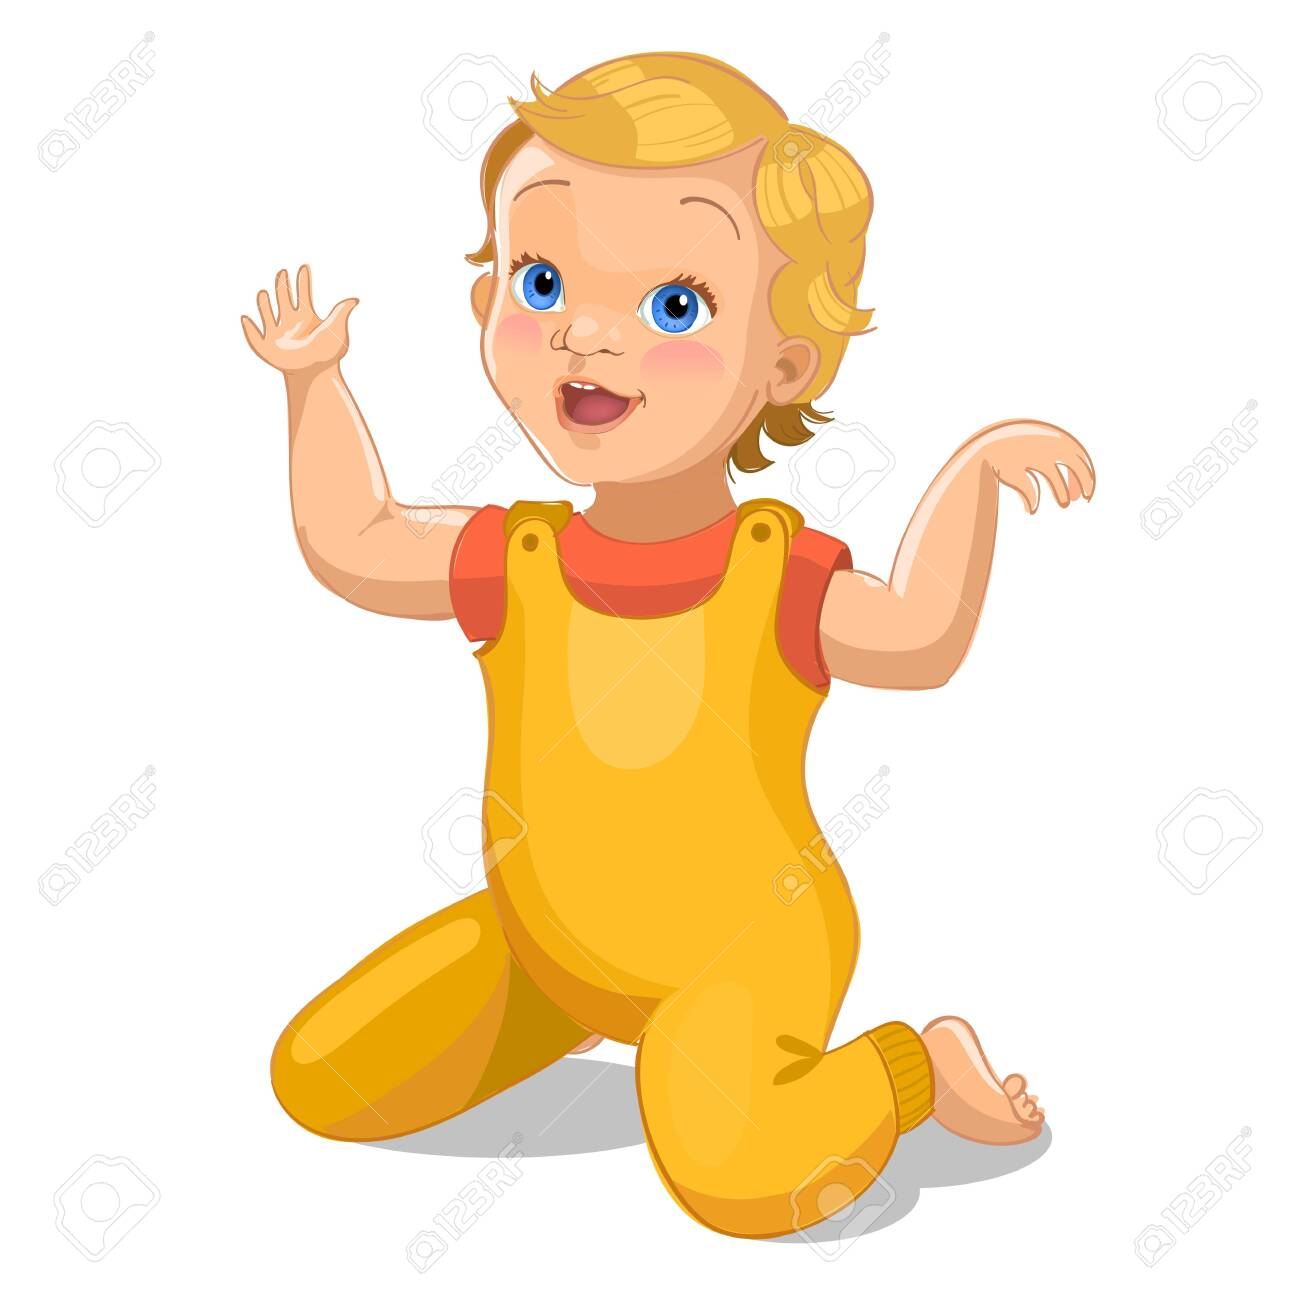 Realistic little baby in yellow suit. Cartoon baby character. Vector illustration - 124157395